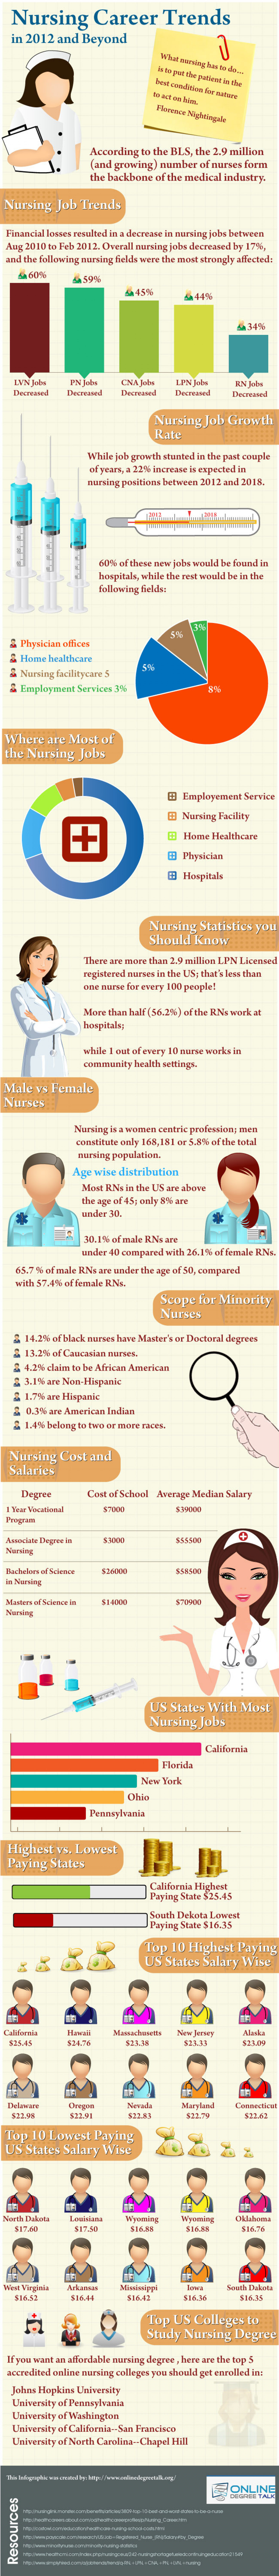 Nursing Career Trends In 2012 And Beyond Infographic